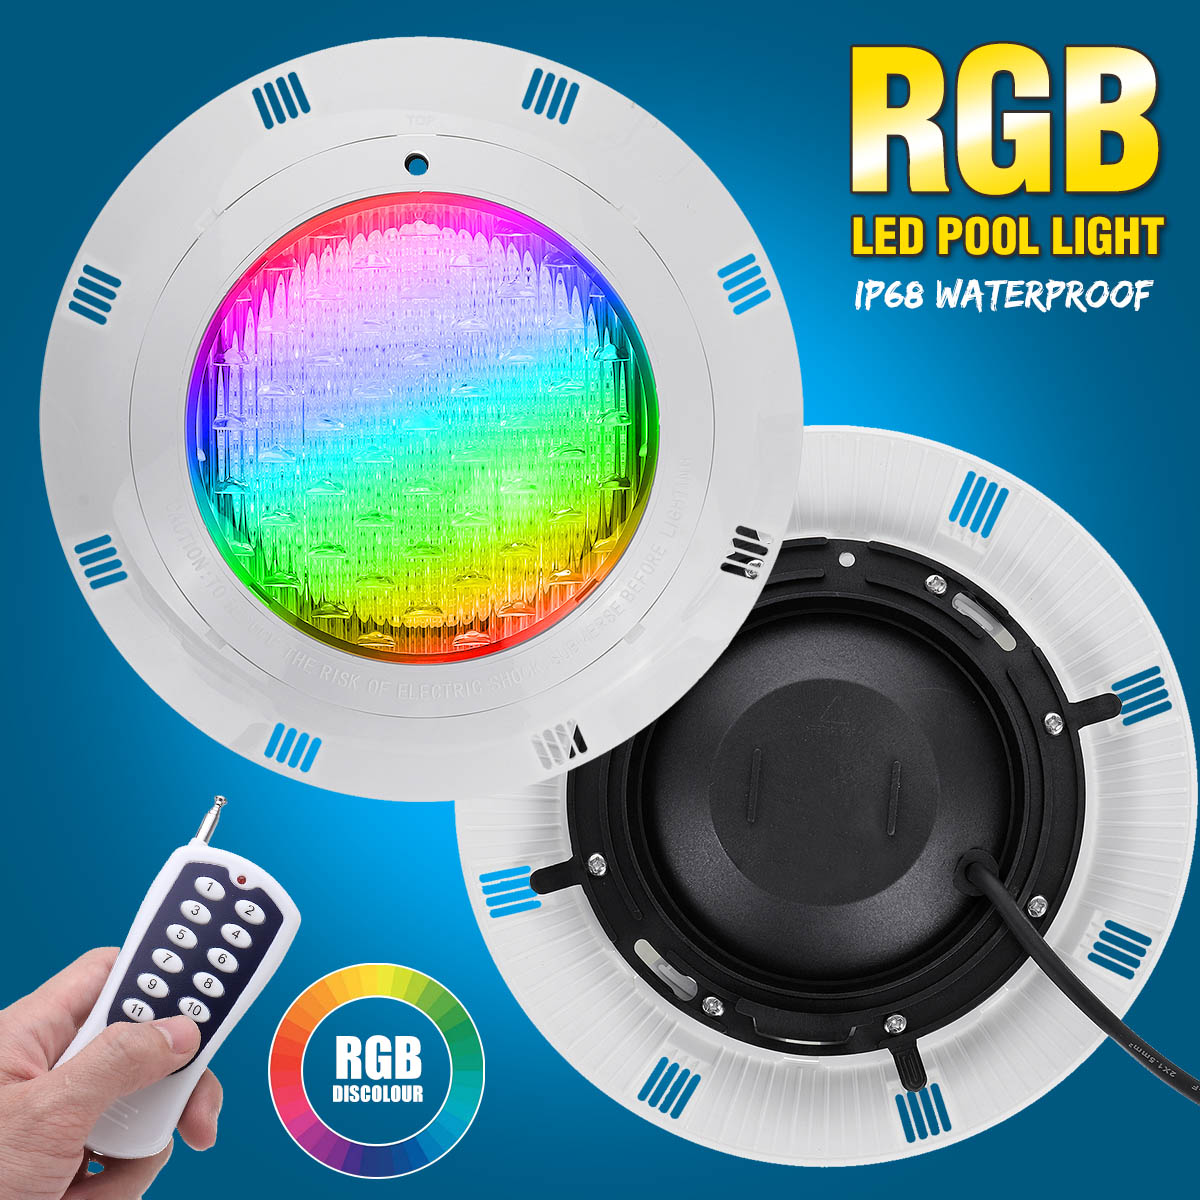 45W RGB Led Swimming Pool Light 450LED IP68 Waterproof AC/DC12V-24V Outdoor RGB UnderWater Light Pond Led Piscina Luz Spotlight